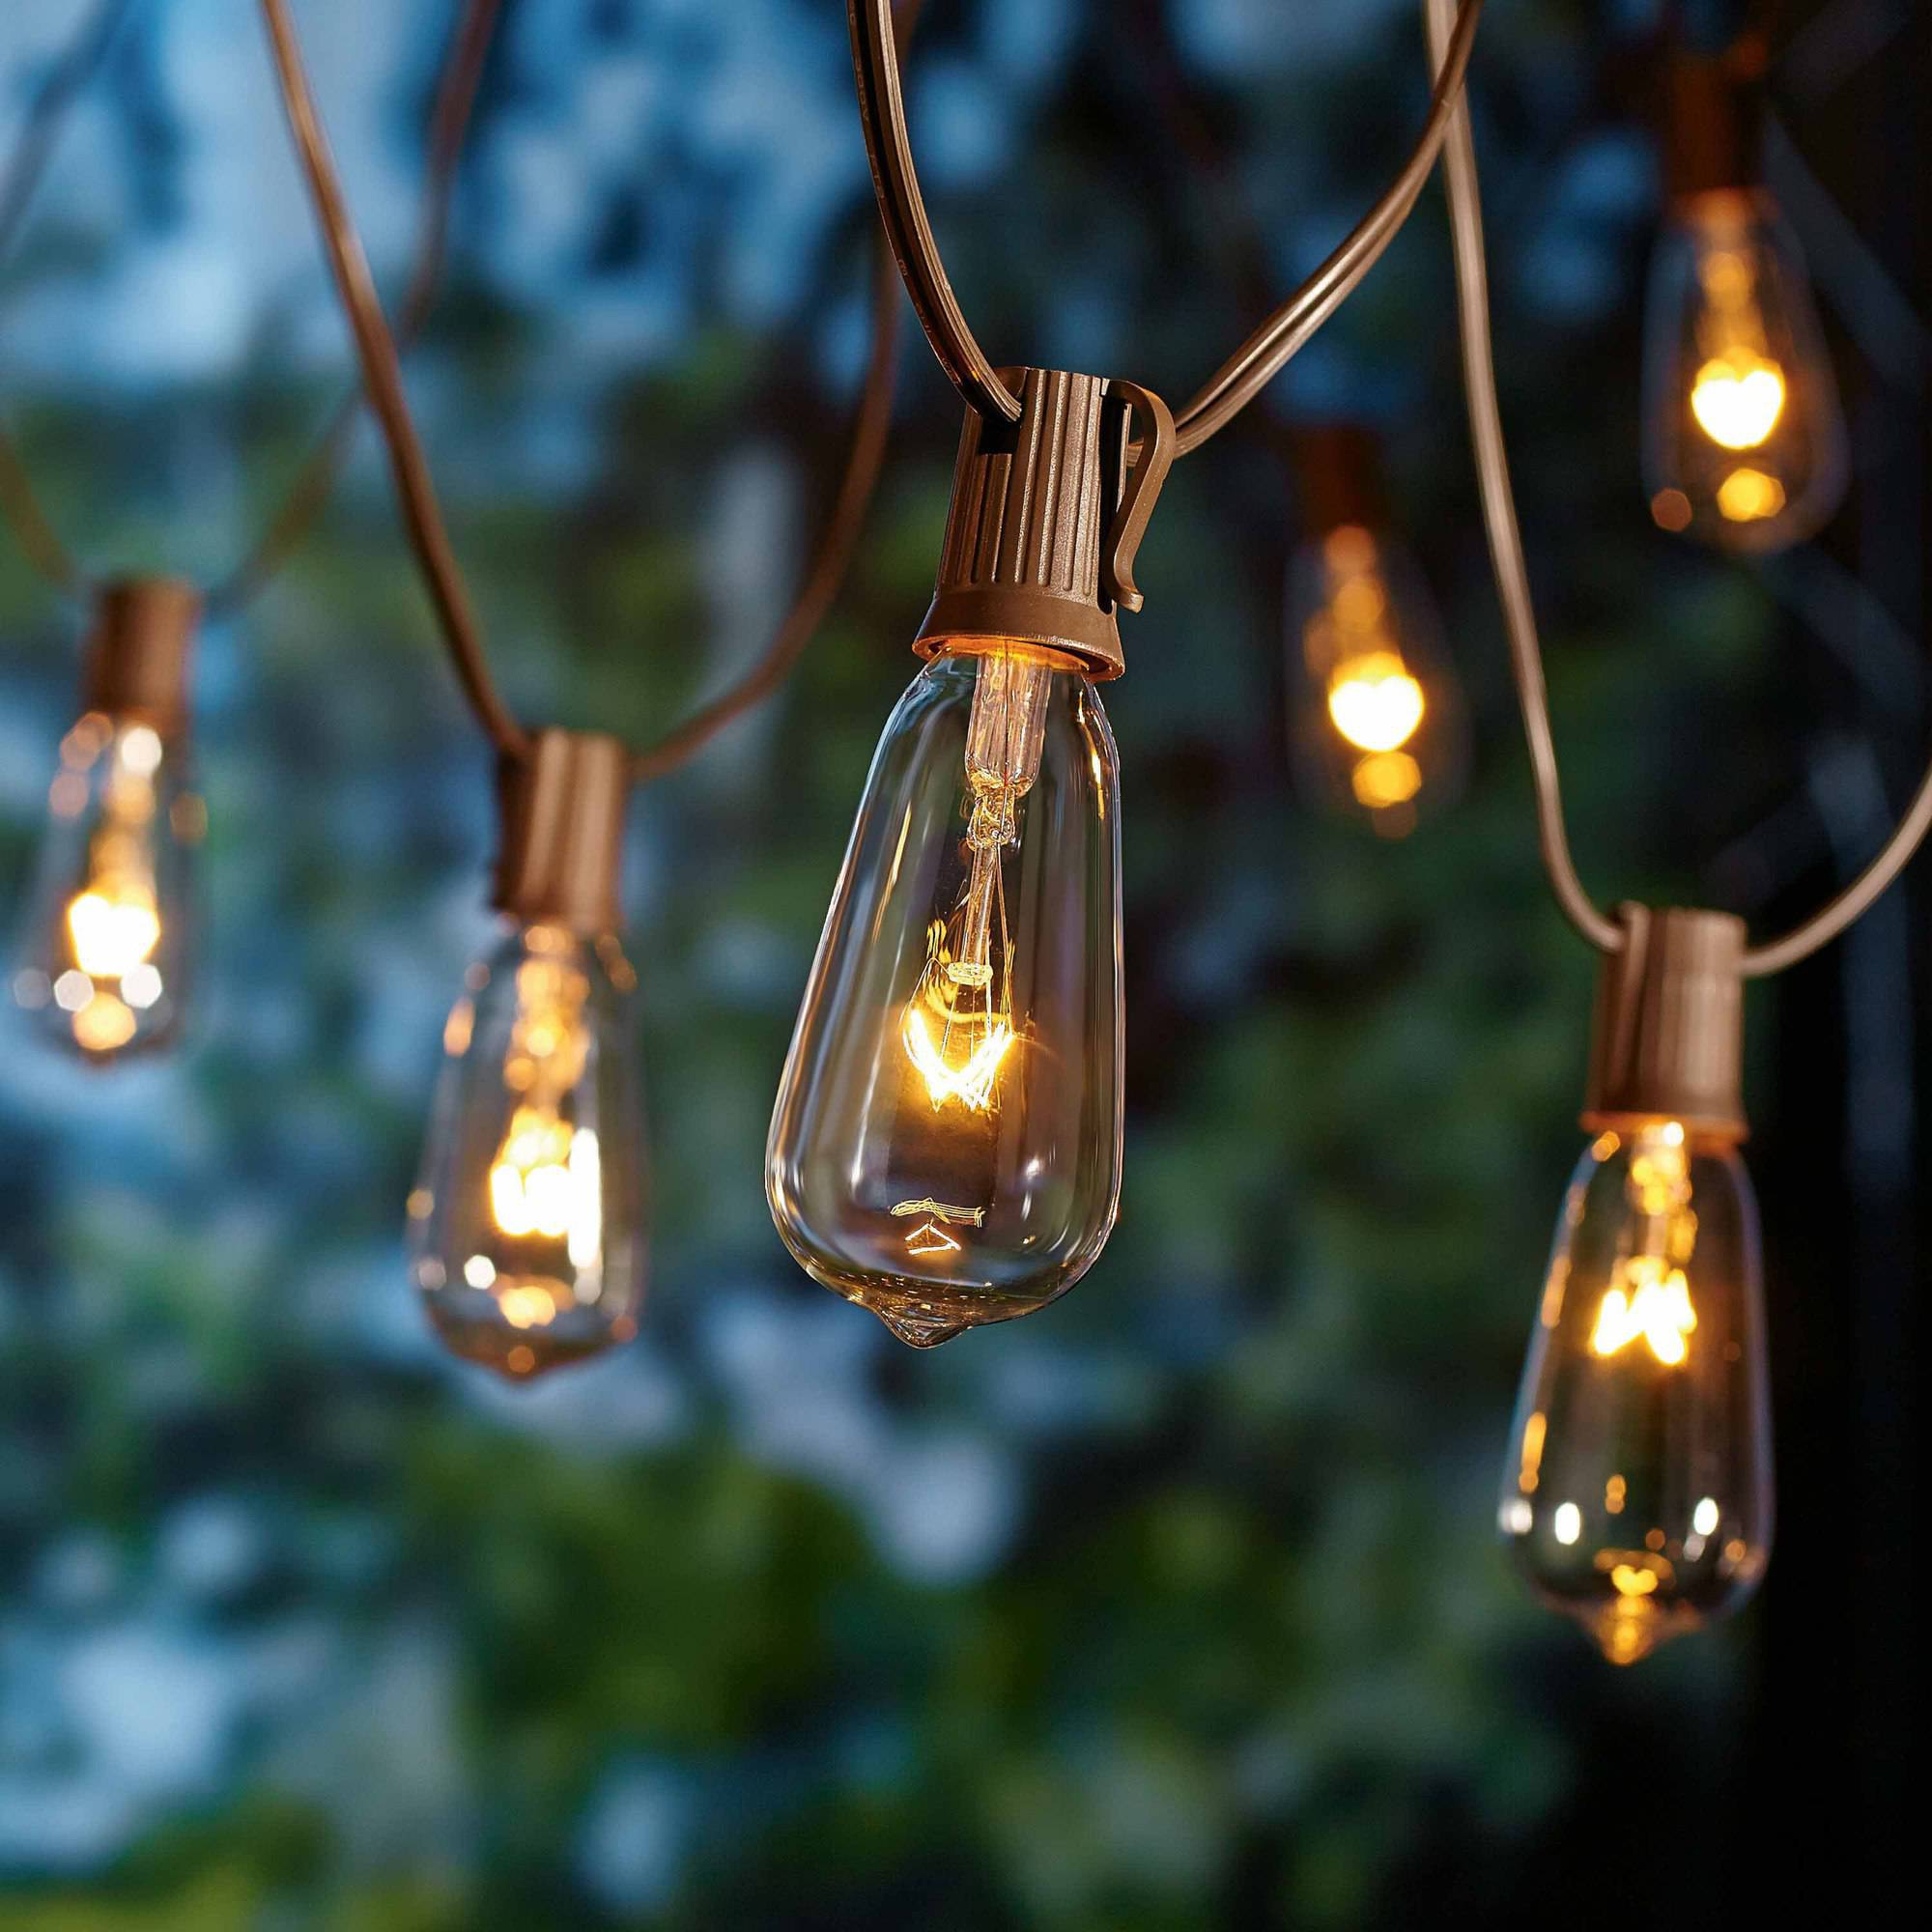 Beau Better Homes And Gardens Outdoor Glass Edison String Lights, 10 Count